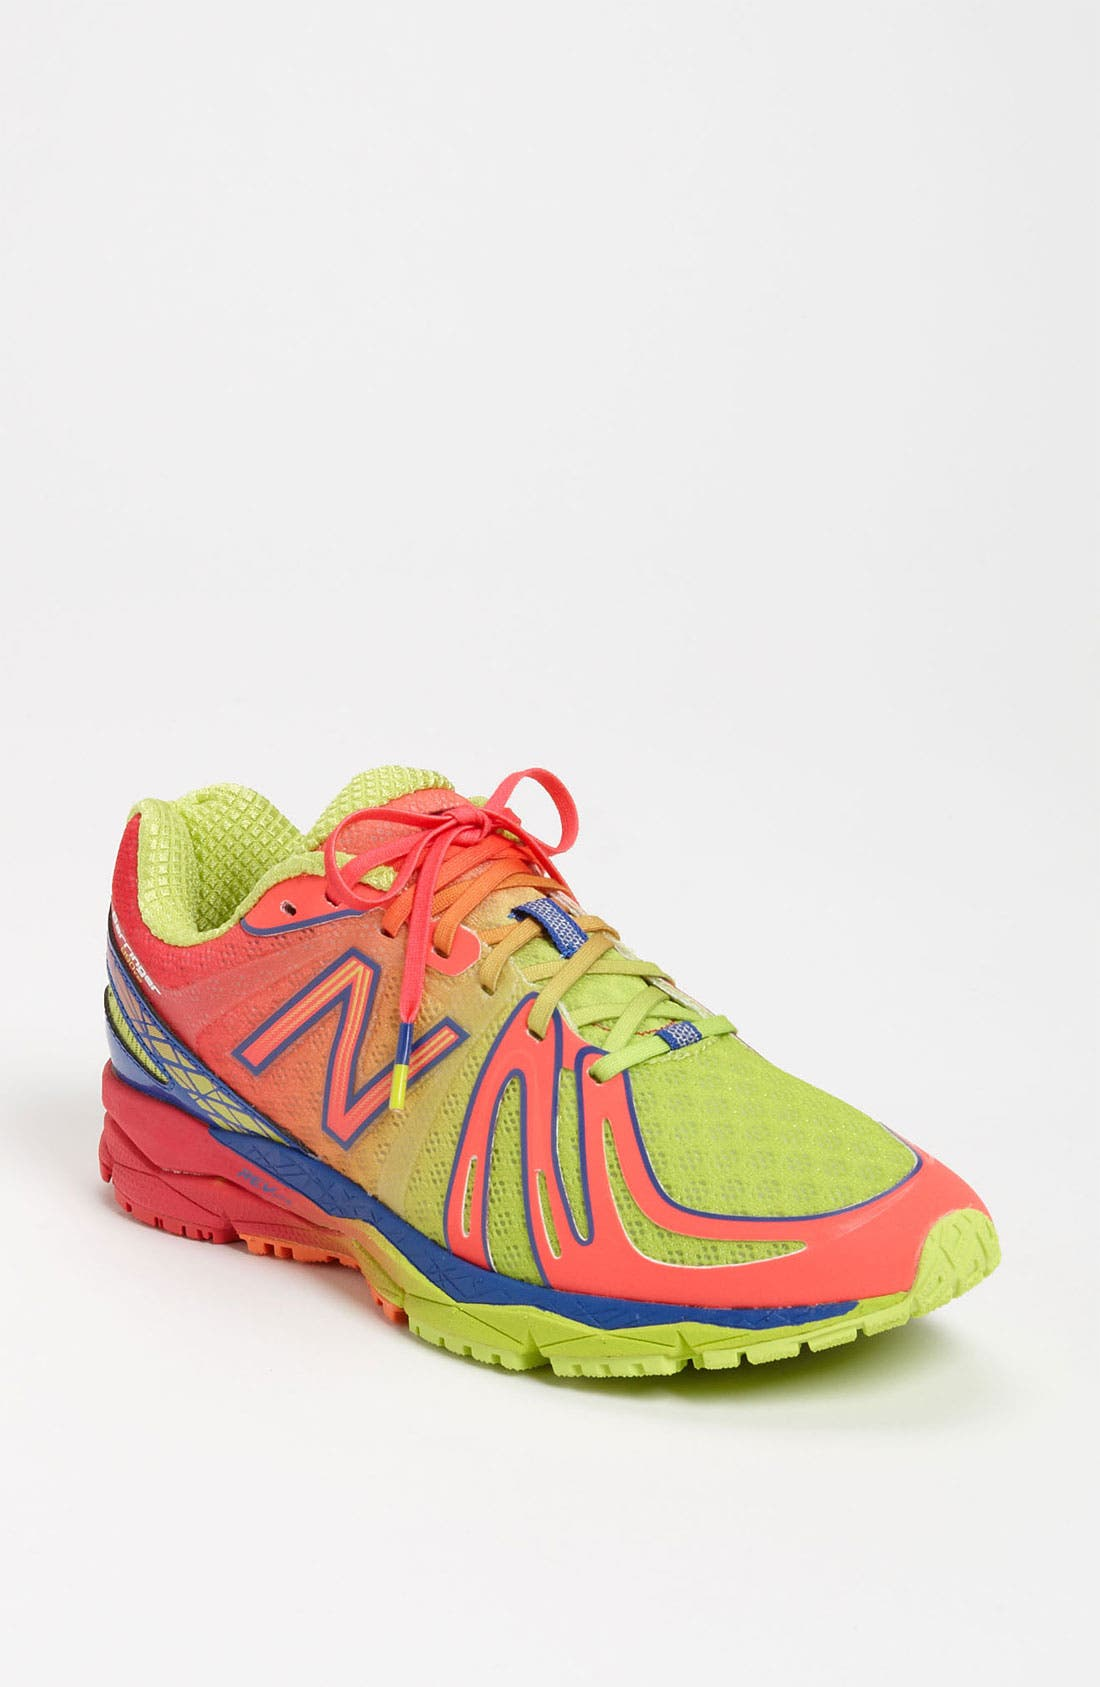 Main Image - New Balance '890' Rainbow Running Shoe (Women)